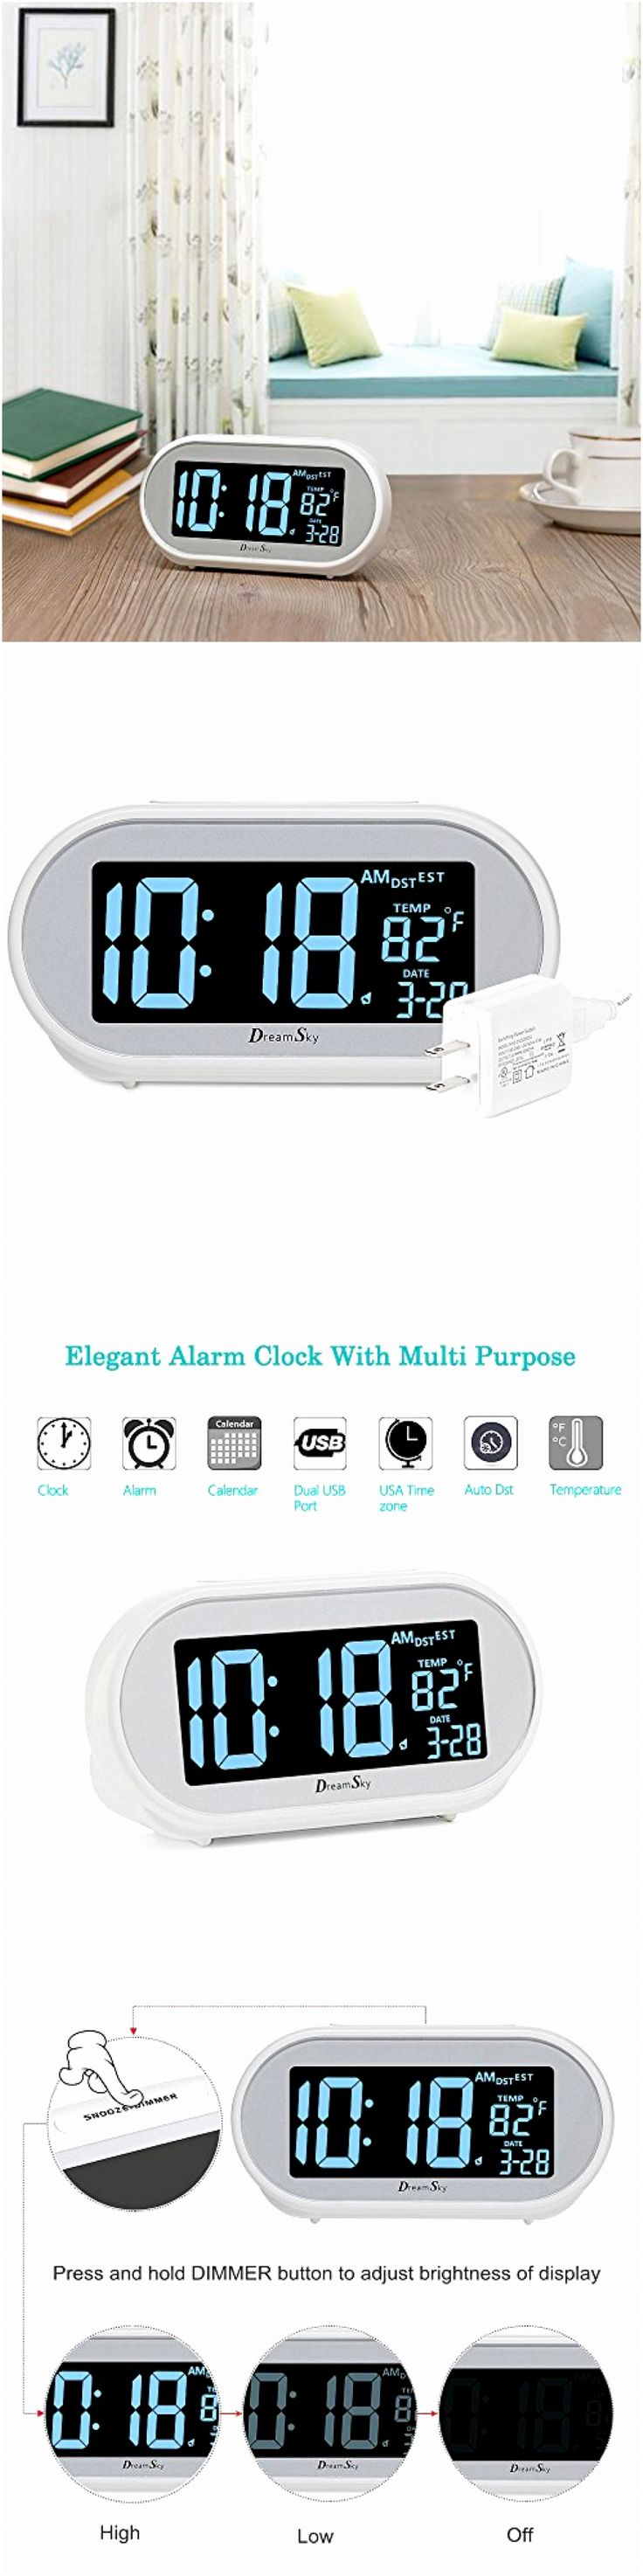 Digital Clocks and Clock Radios: Amazing Home Decorative Accessory - Auto Time Set Alarm Clock W Snooze And Dimmer -> BUY IT NOW ONLY: $36.04 on eBay!